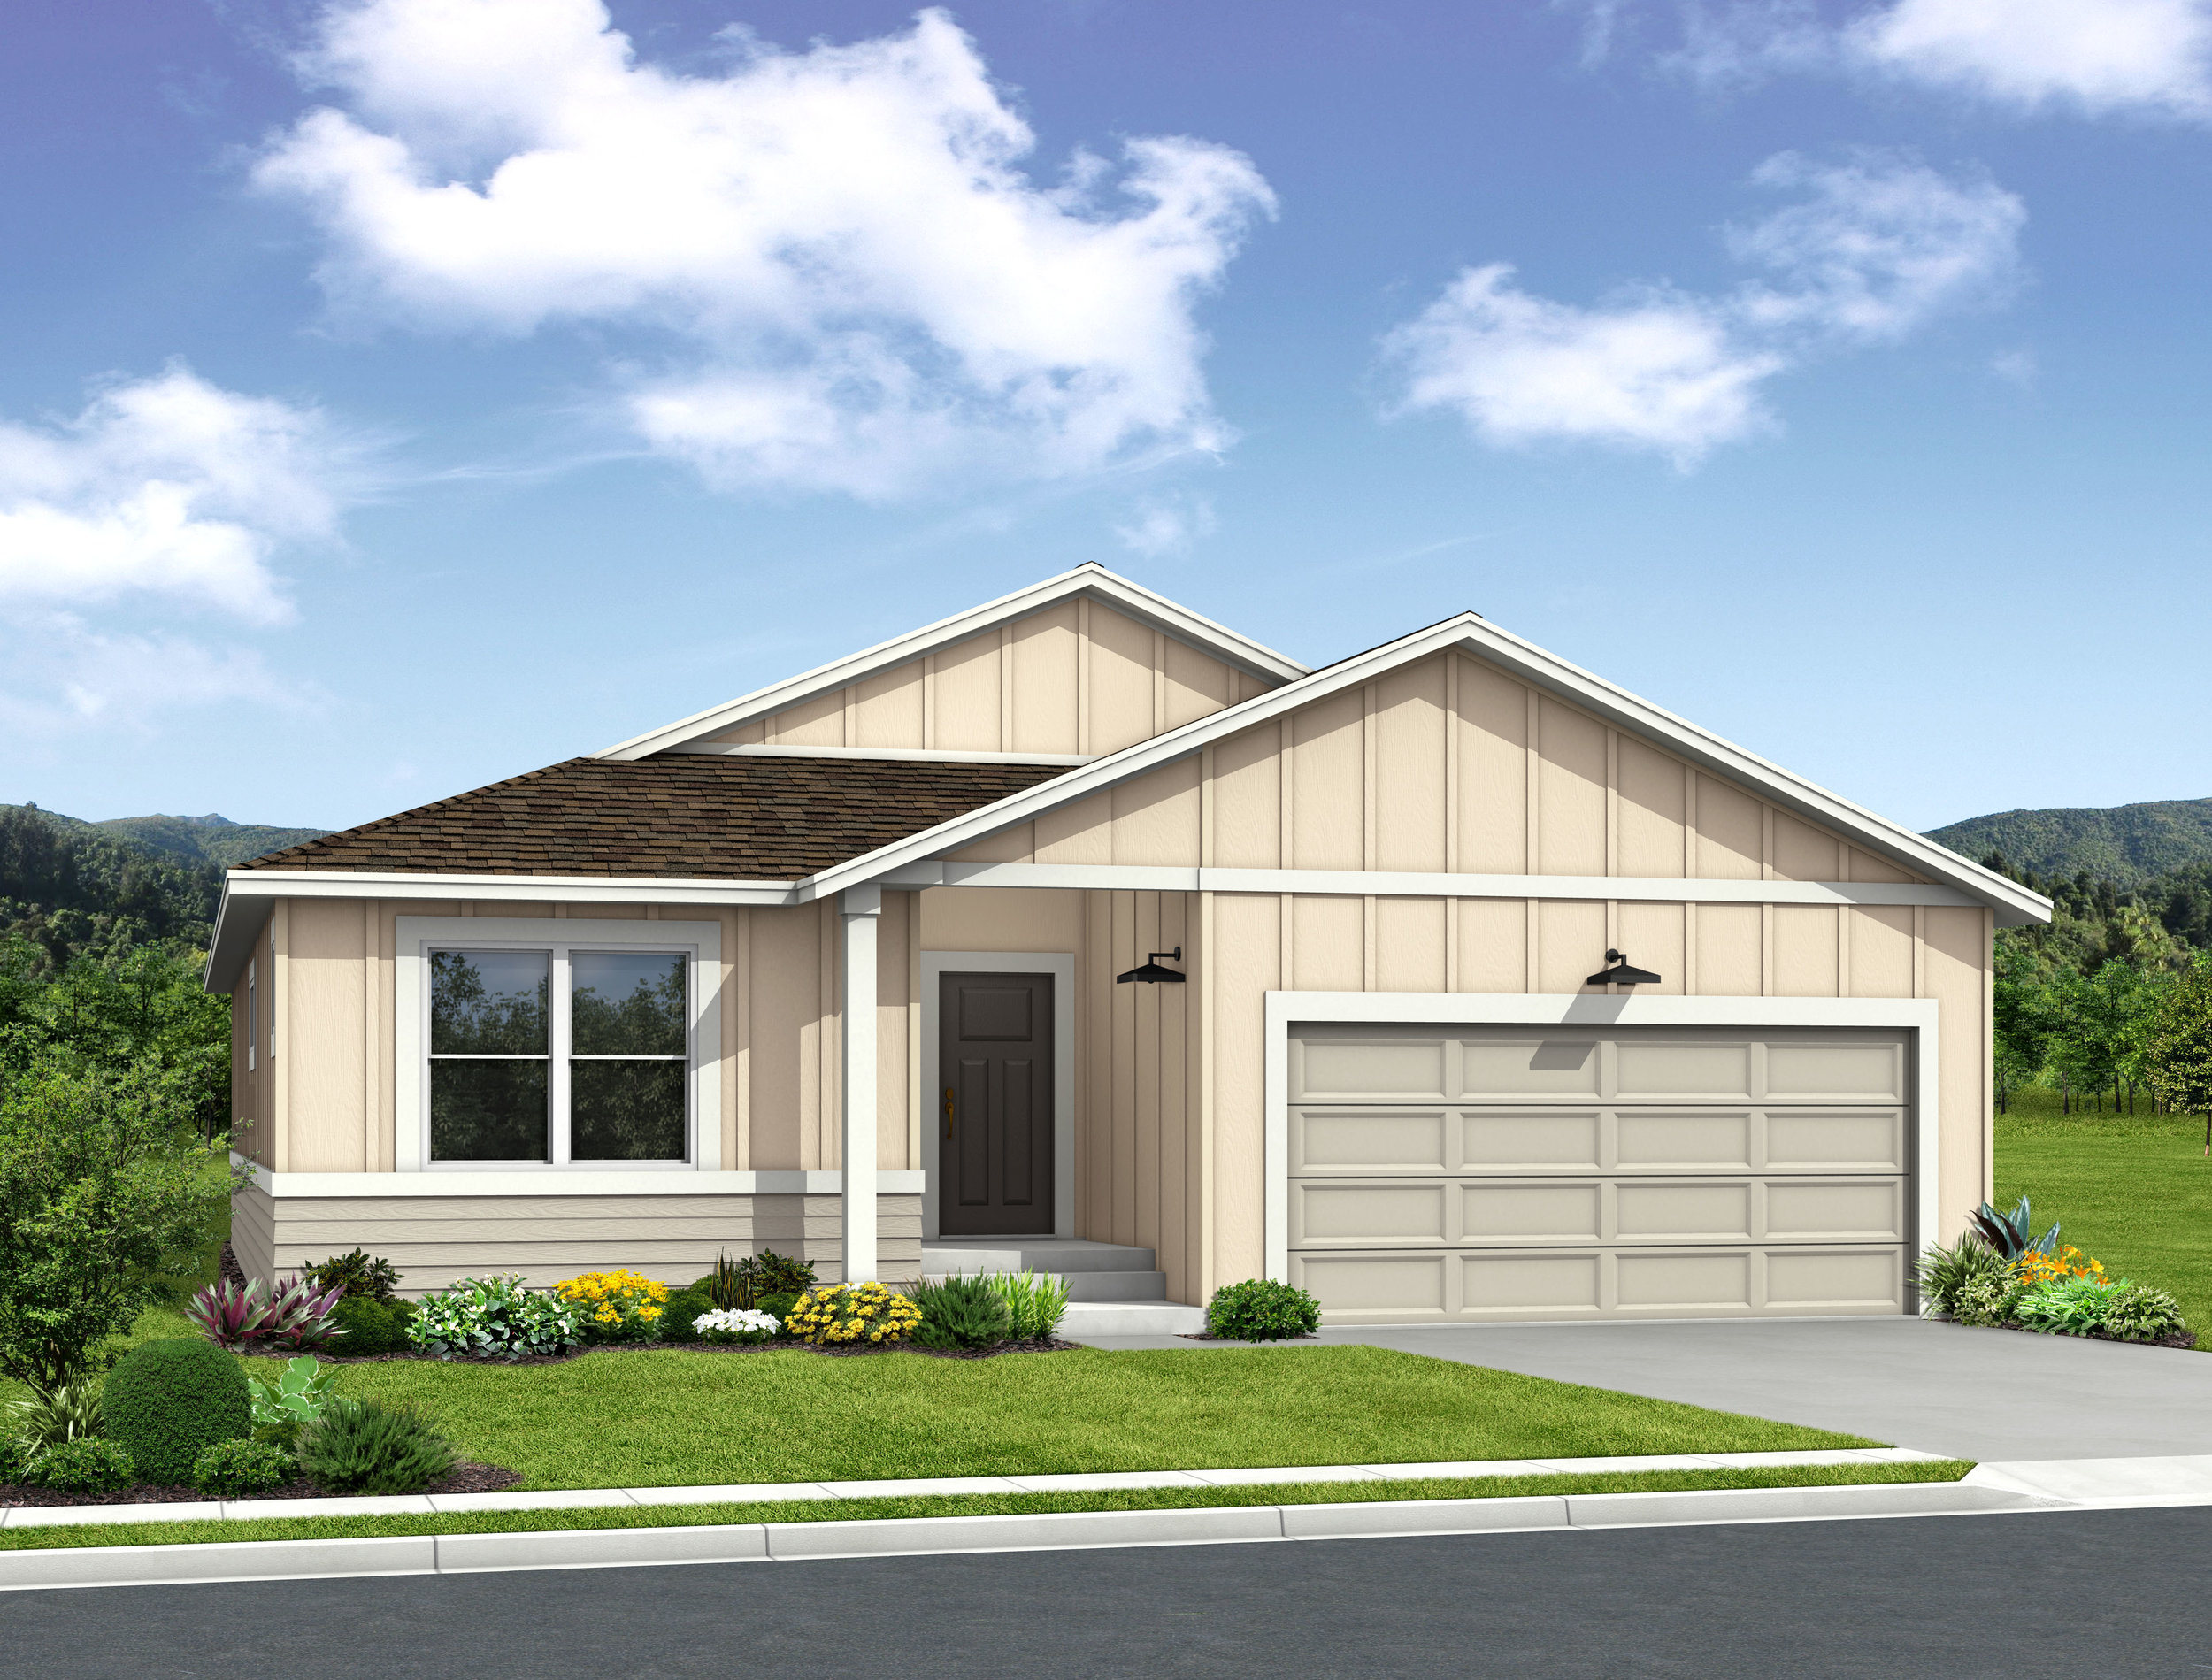 Keller Homes-Cumbre Vista-Farmhouse Series_1664_S.jpg